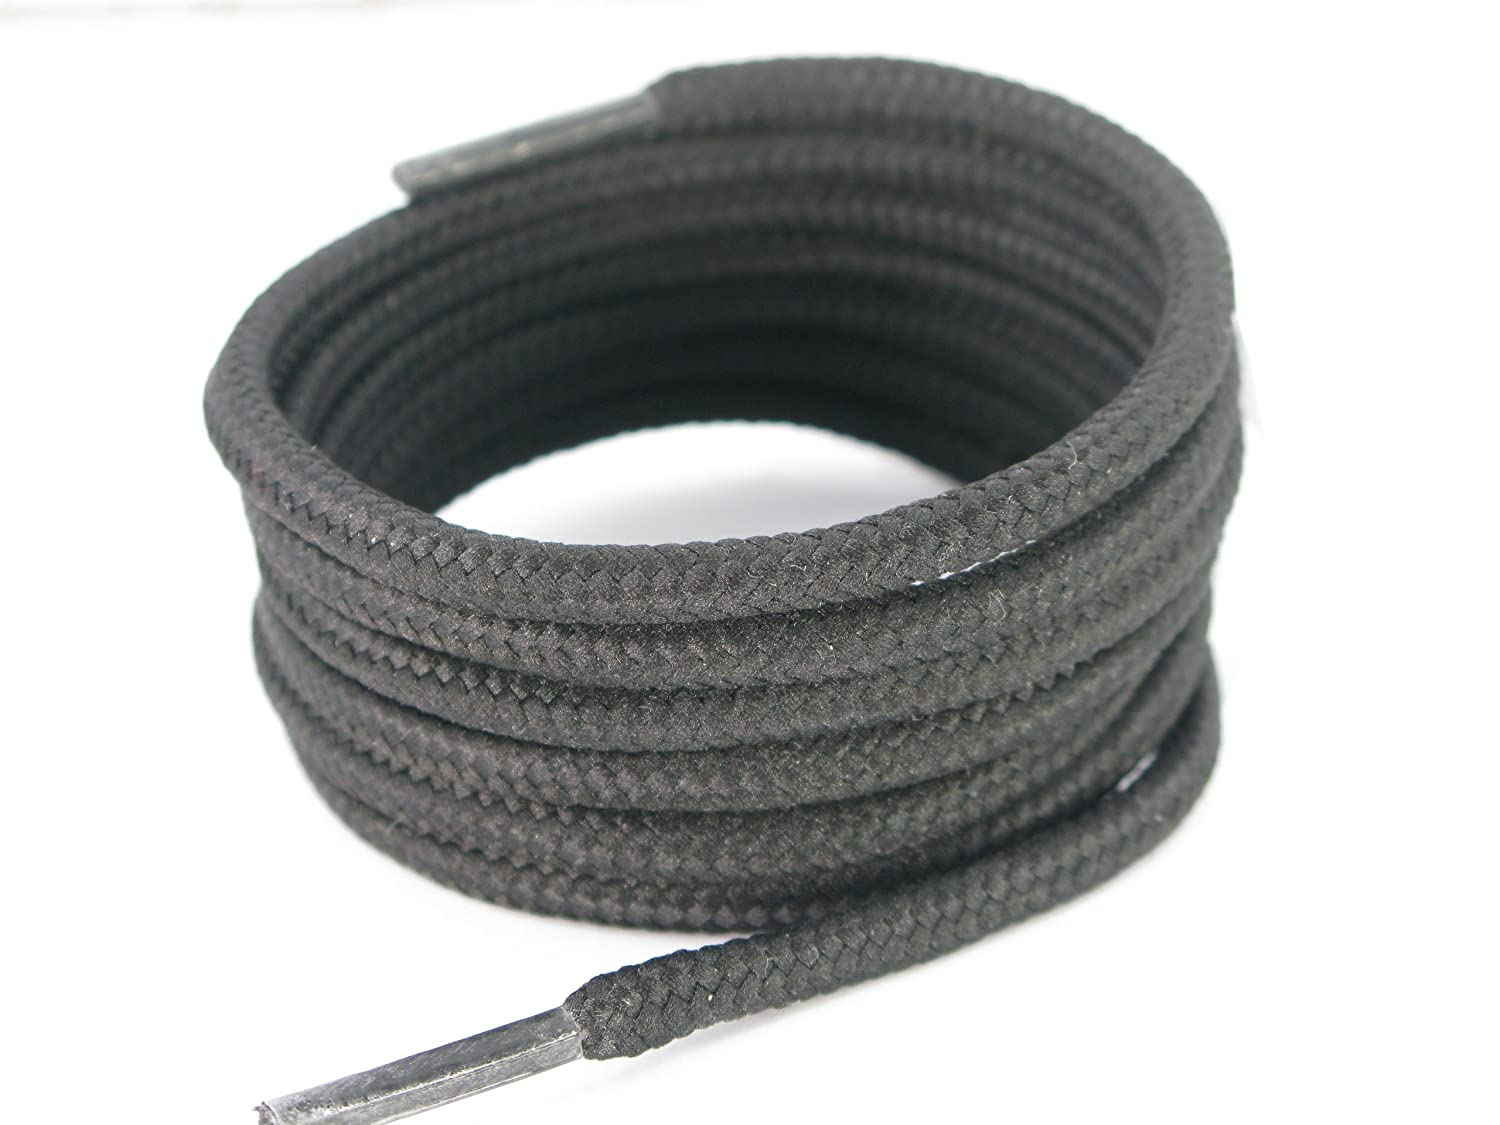 b291cd2752 140cm Long, 5mm wide Round Black Boot laces, 2 PAIR PACK: Amazon.co.uk:  Shoes & Bags